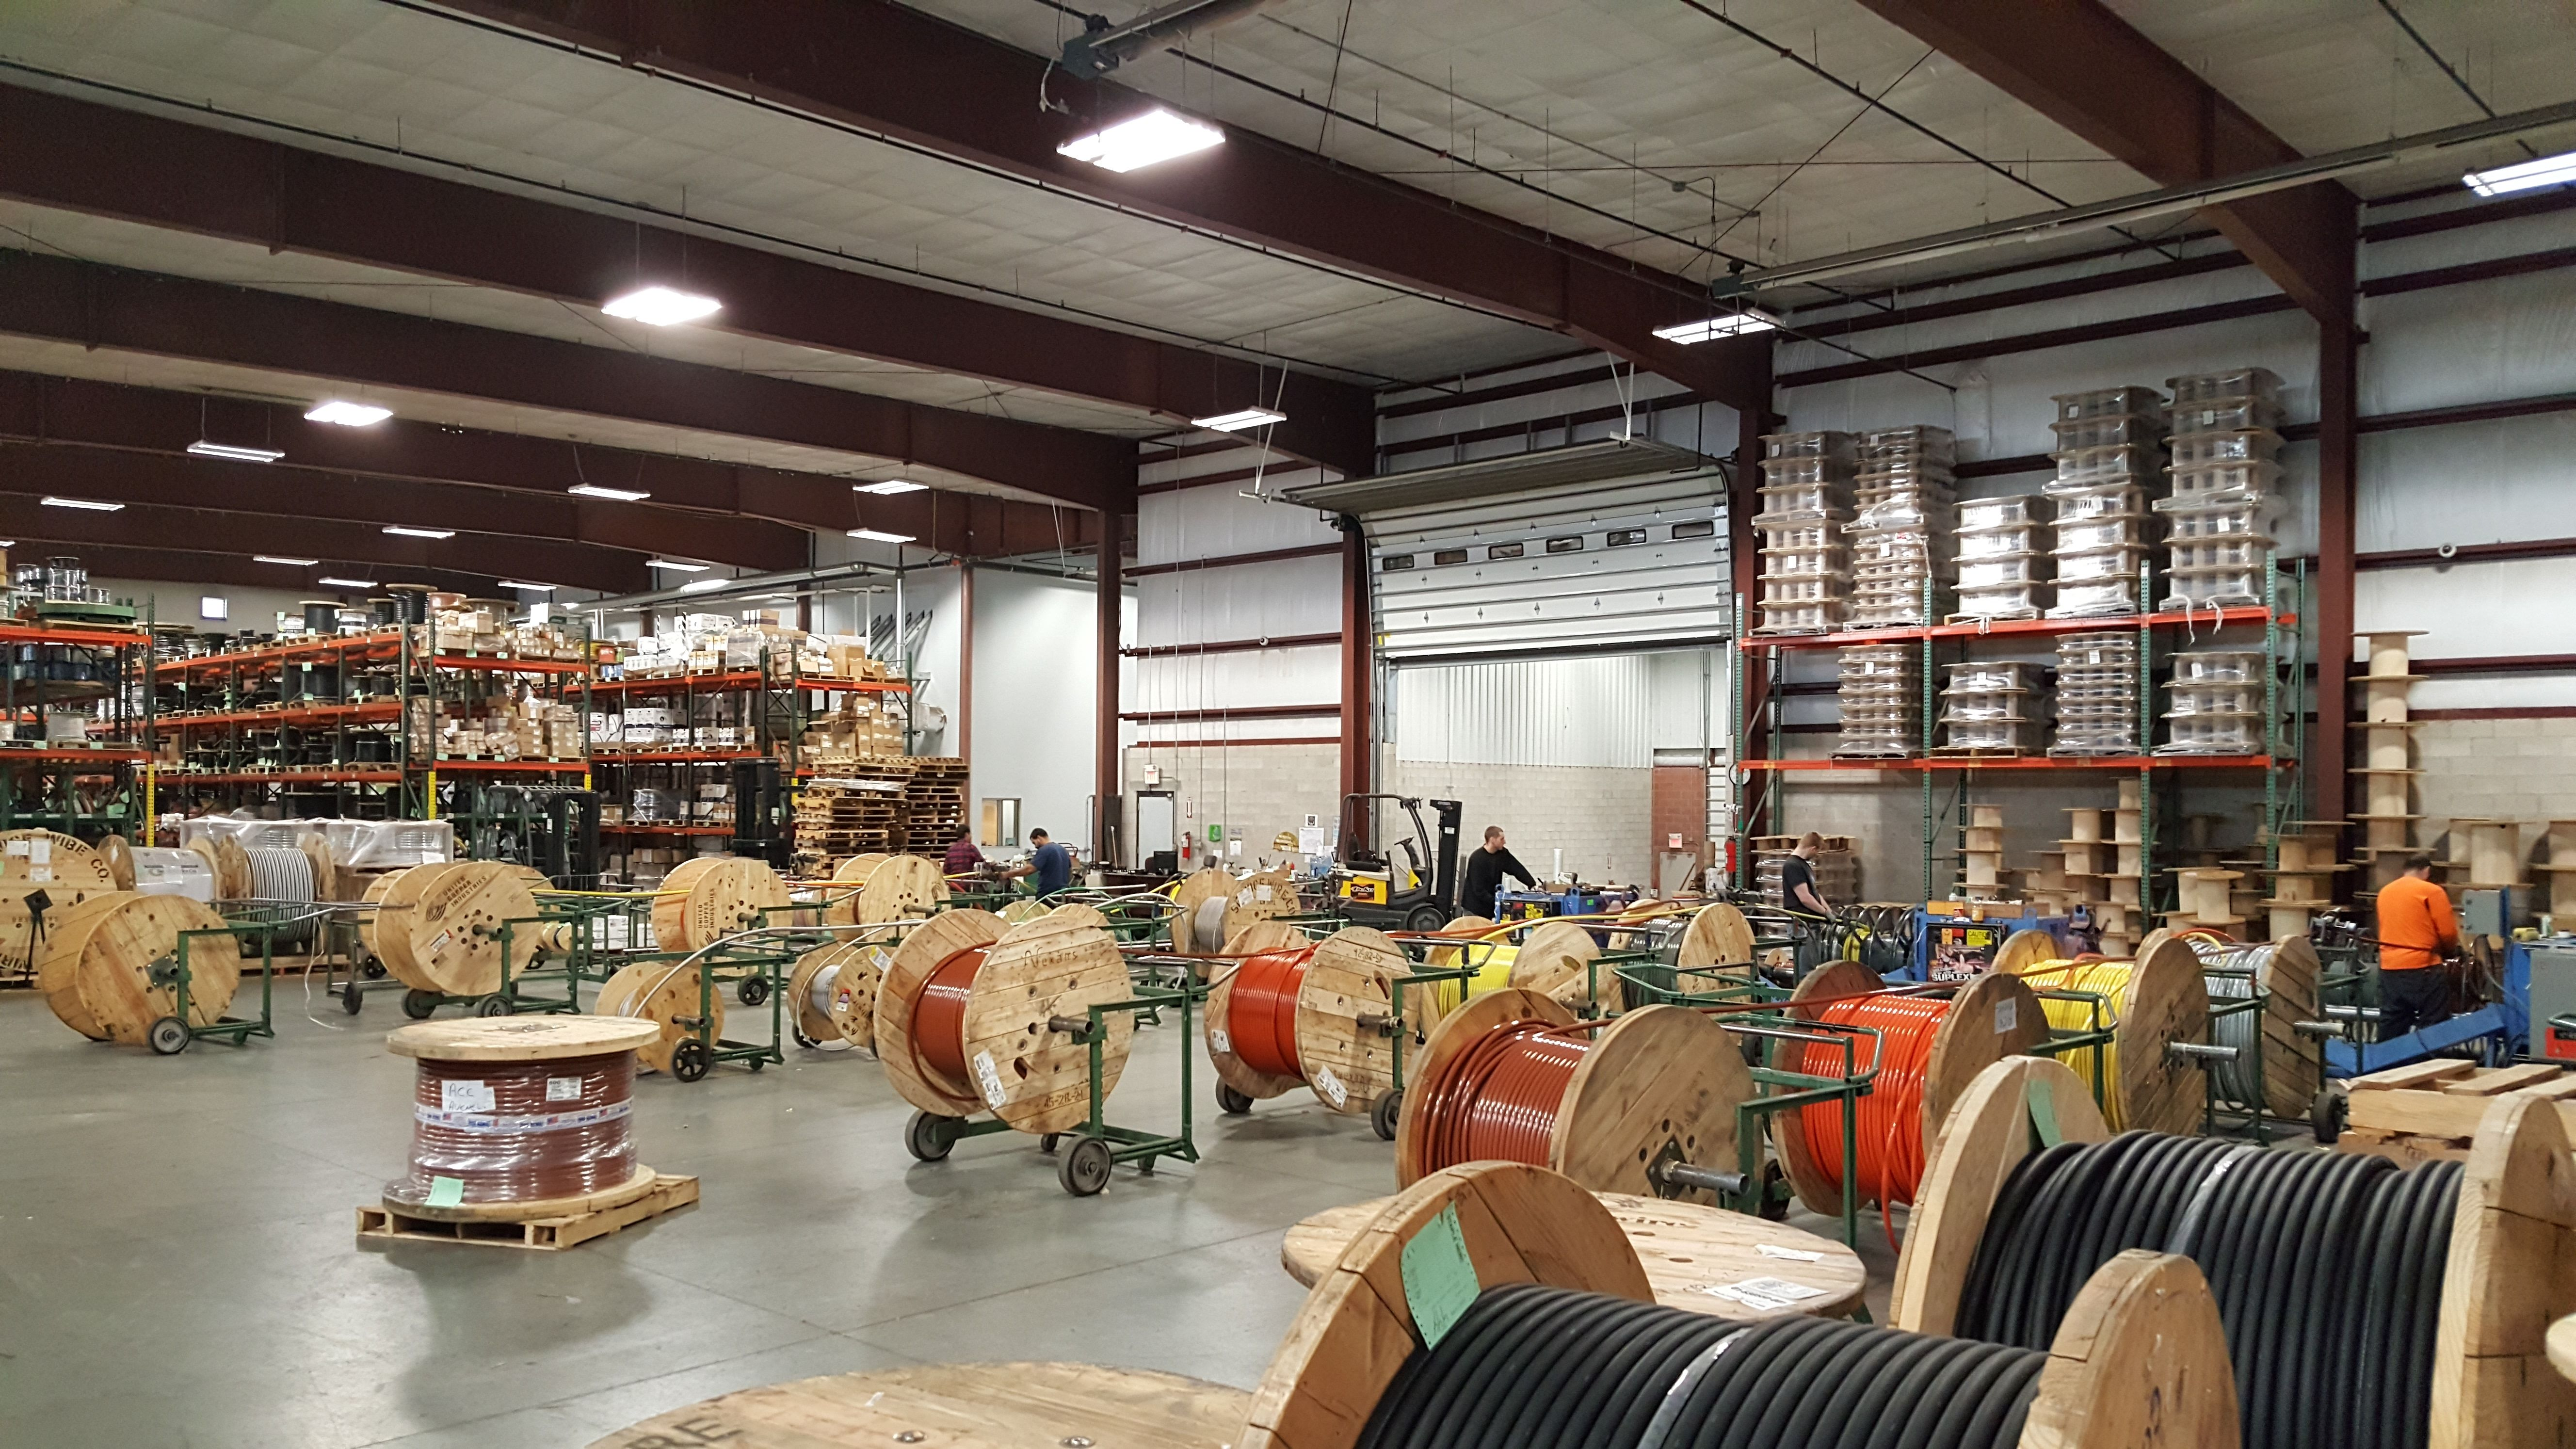 Winter weather isn't going to slow us down! Keep on cuttin'! #wirecutting #ace #acewire #cable #reels #parallels #wire